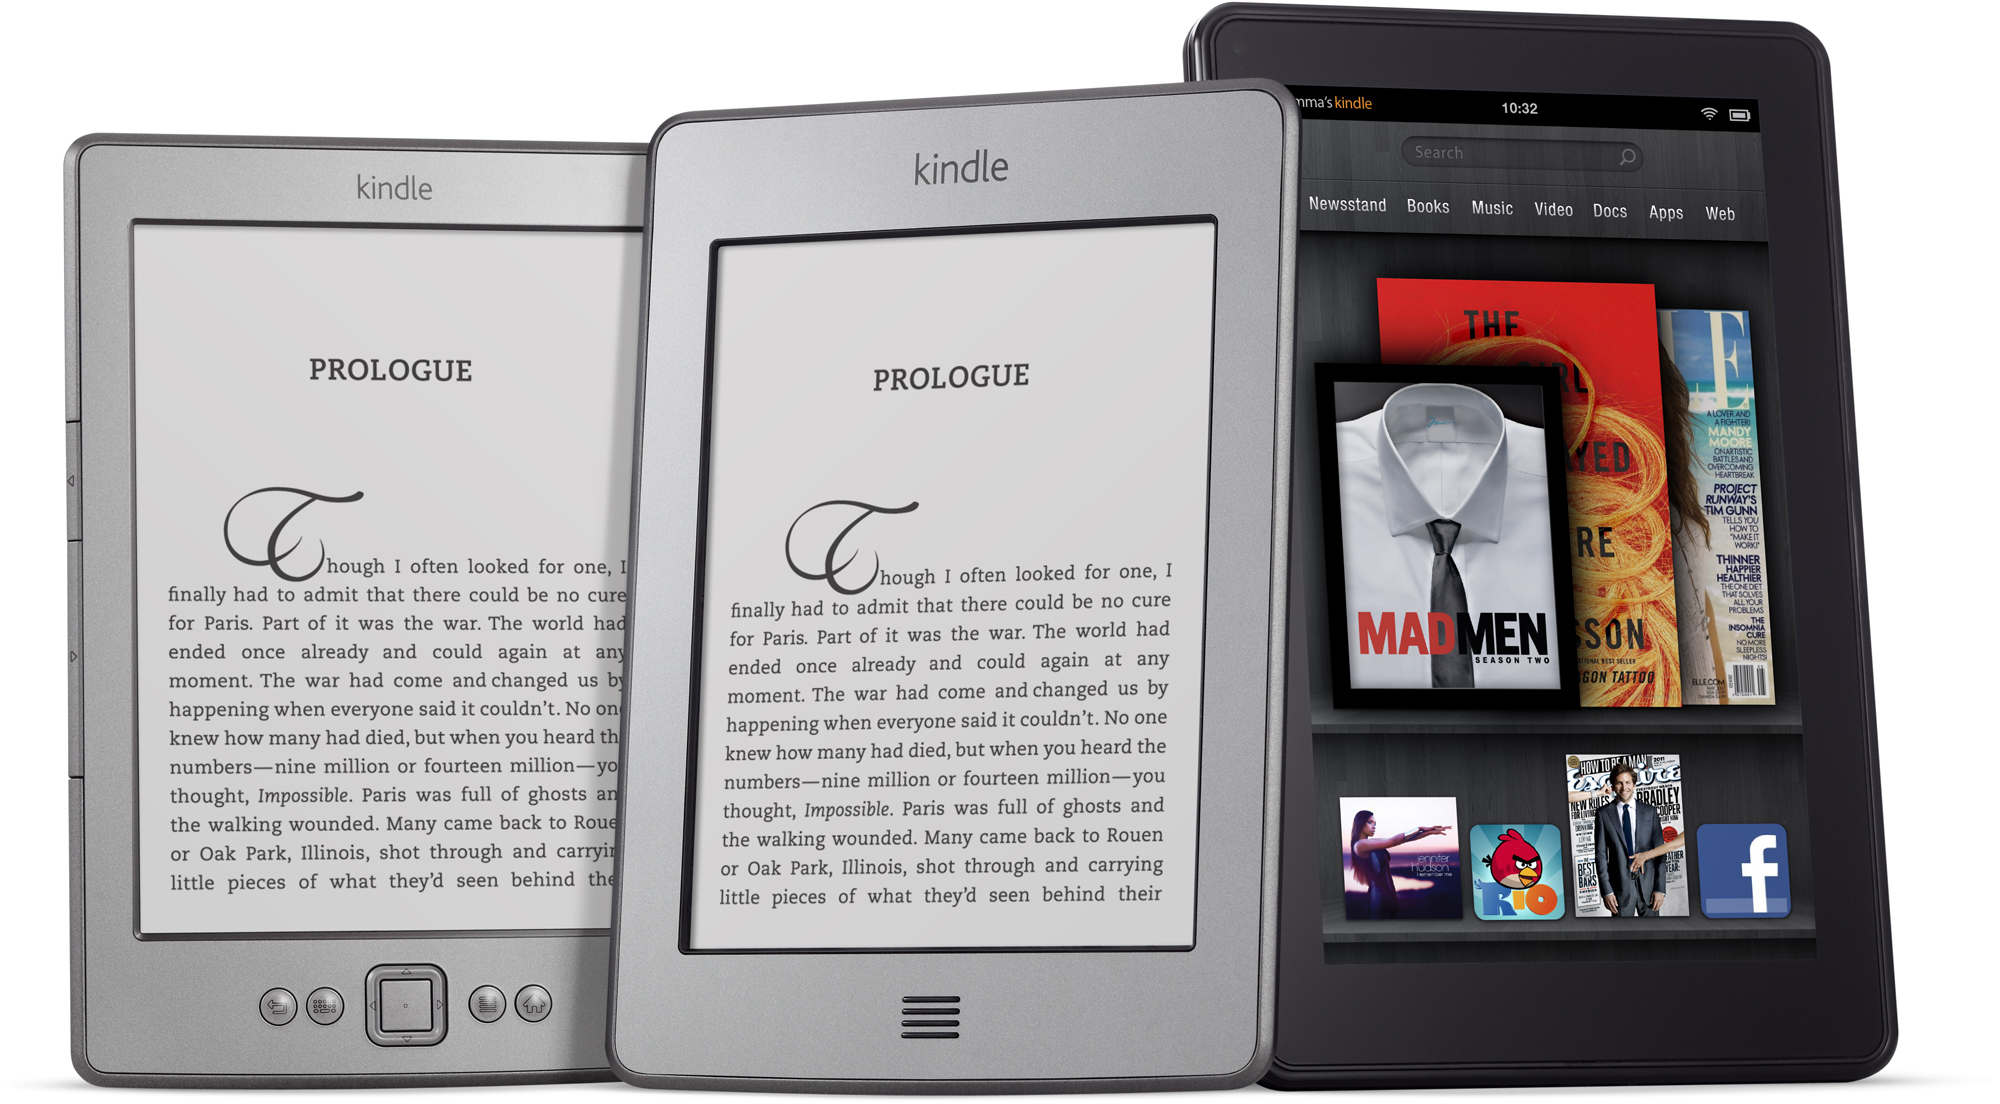 Amazon com espera bater o iPad com o Kindle Fire